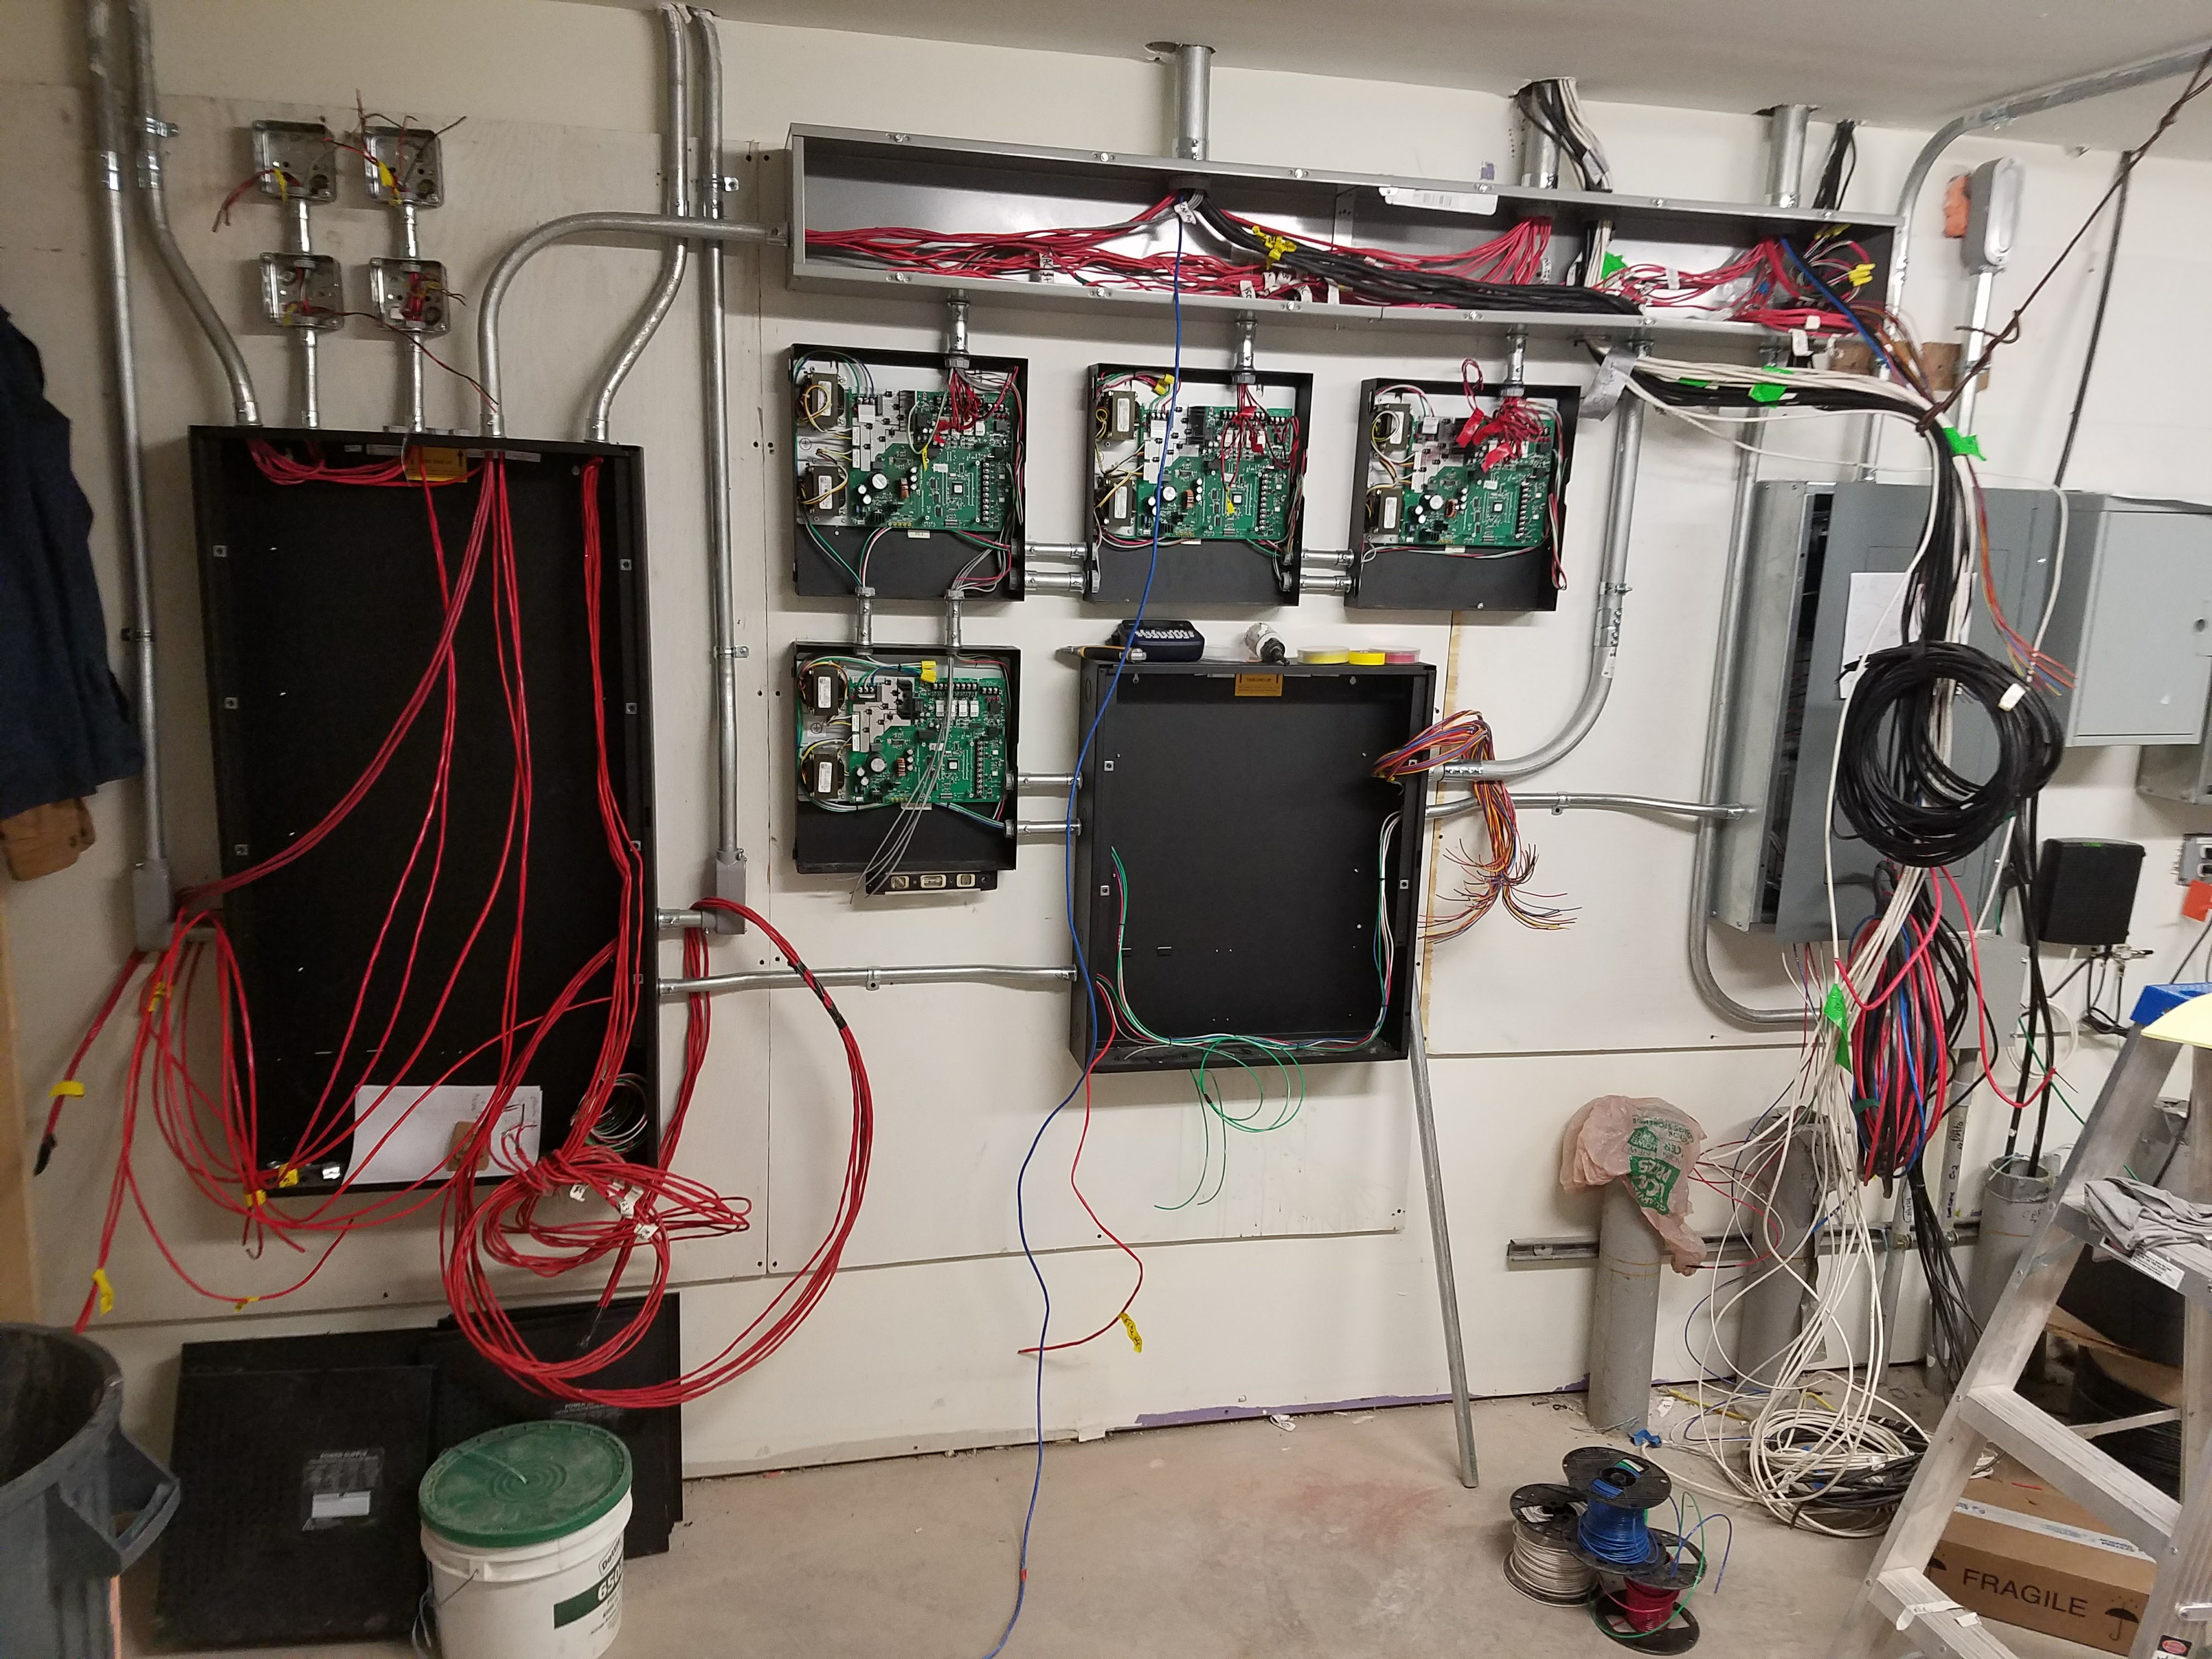 Stay connected by hiring a reputable electrical company